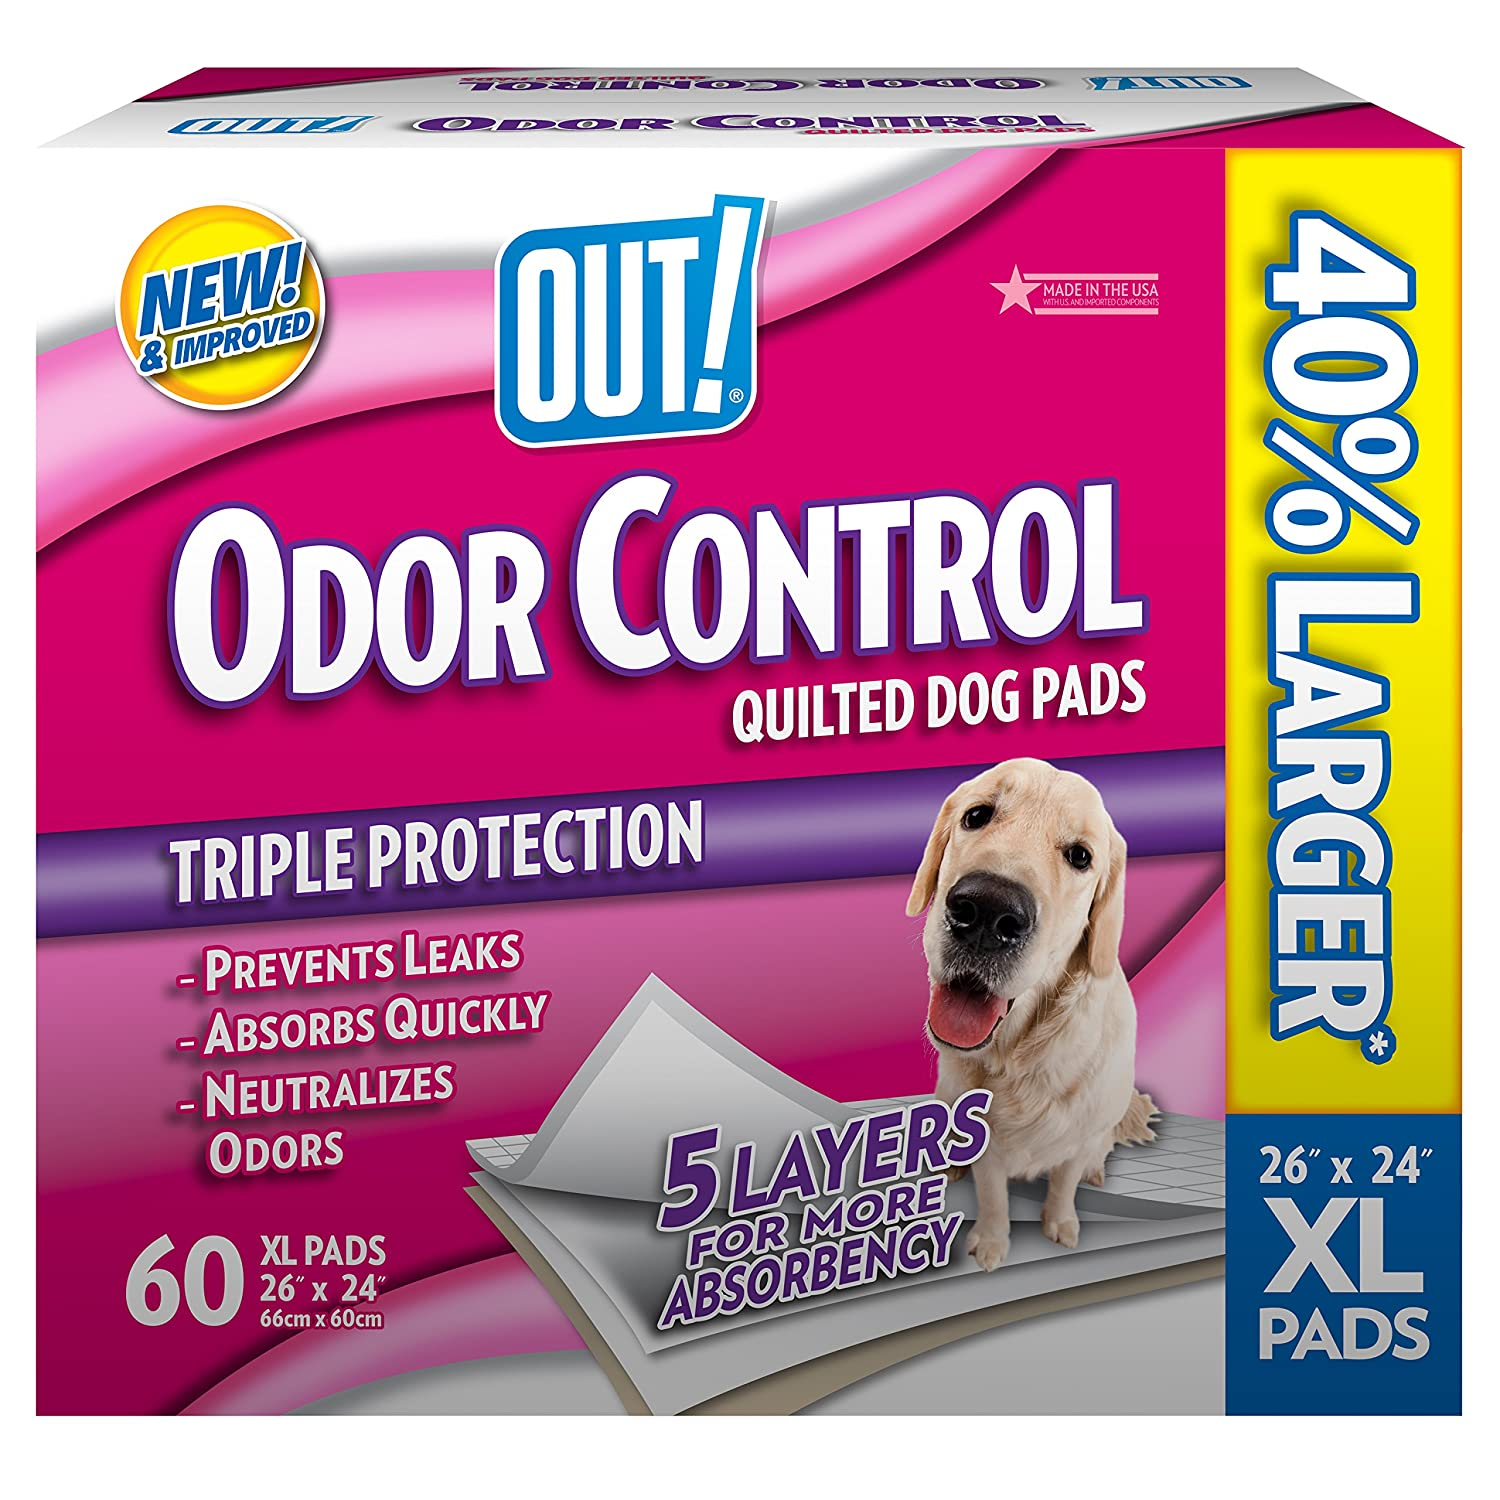 OUT! Odor Control Extra Large Dog Pads, 26 x 24 inches, Multiple Counts OUT! International 72471-1P